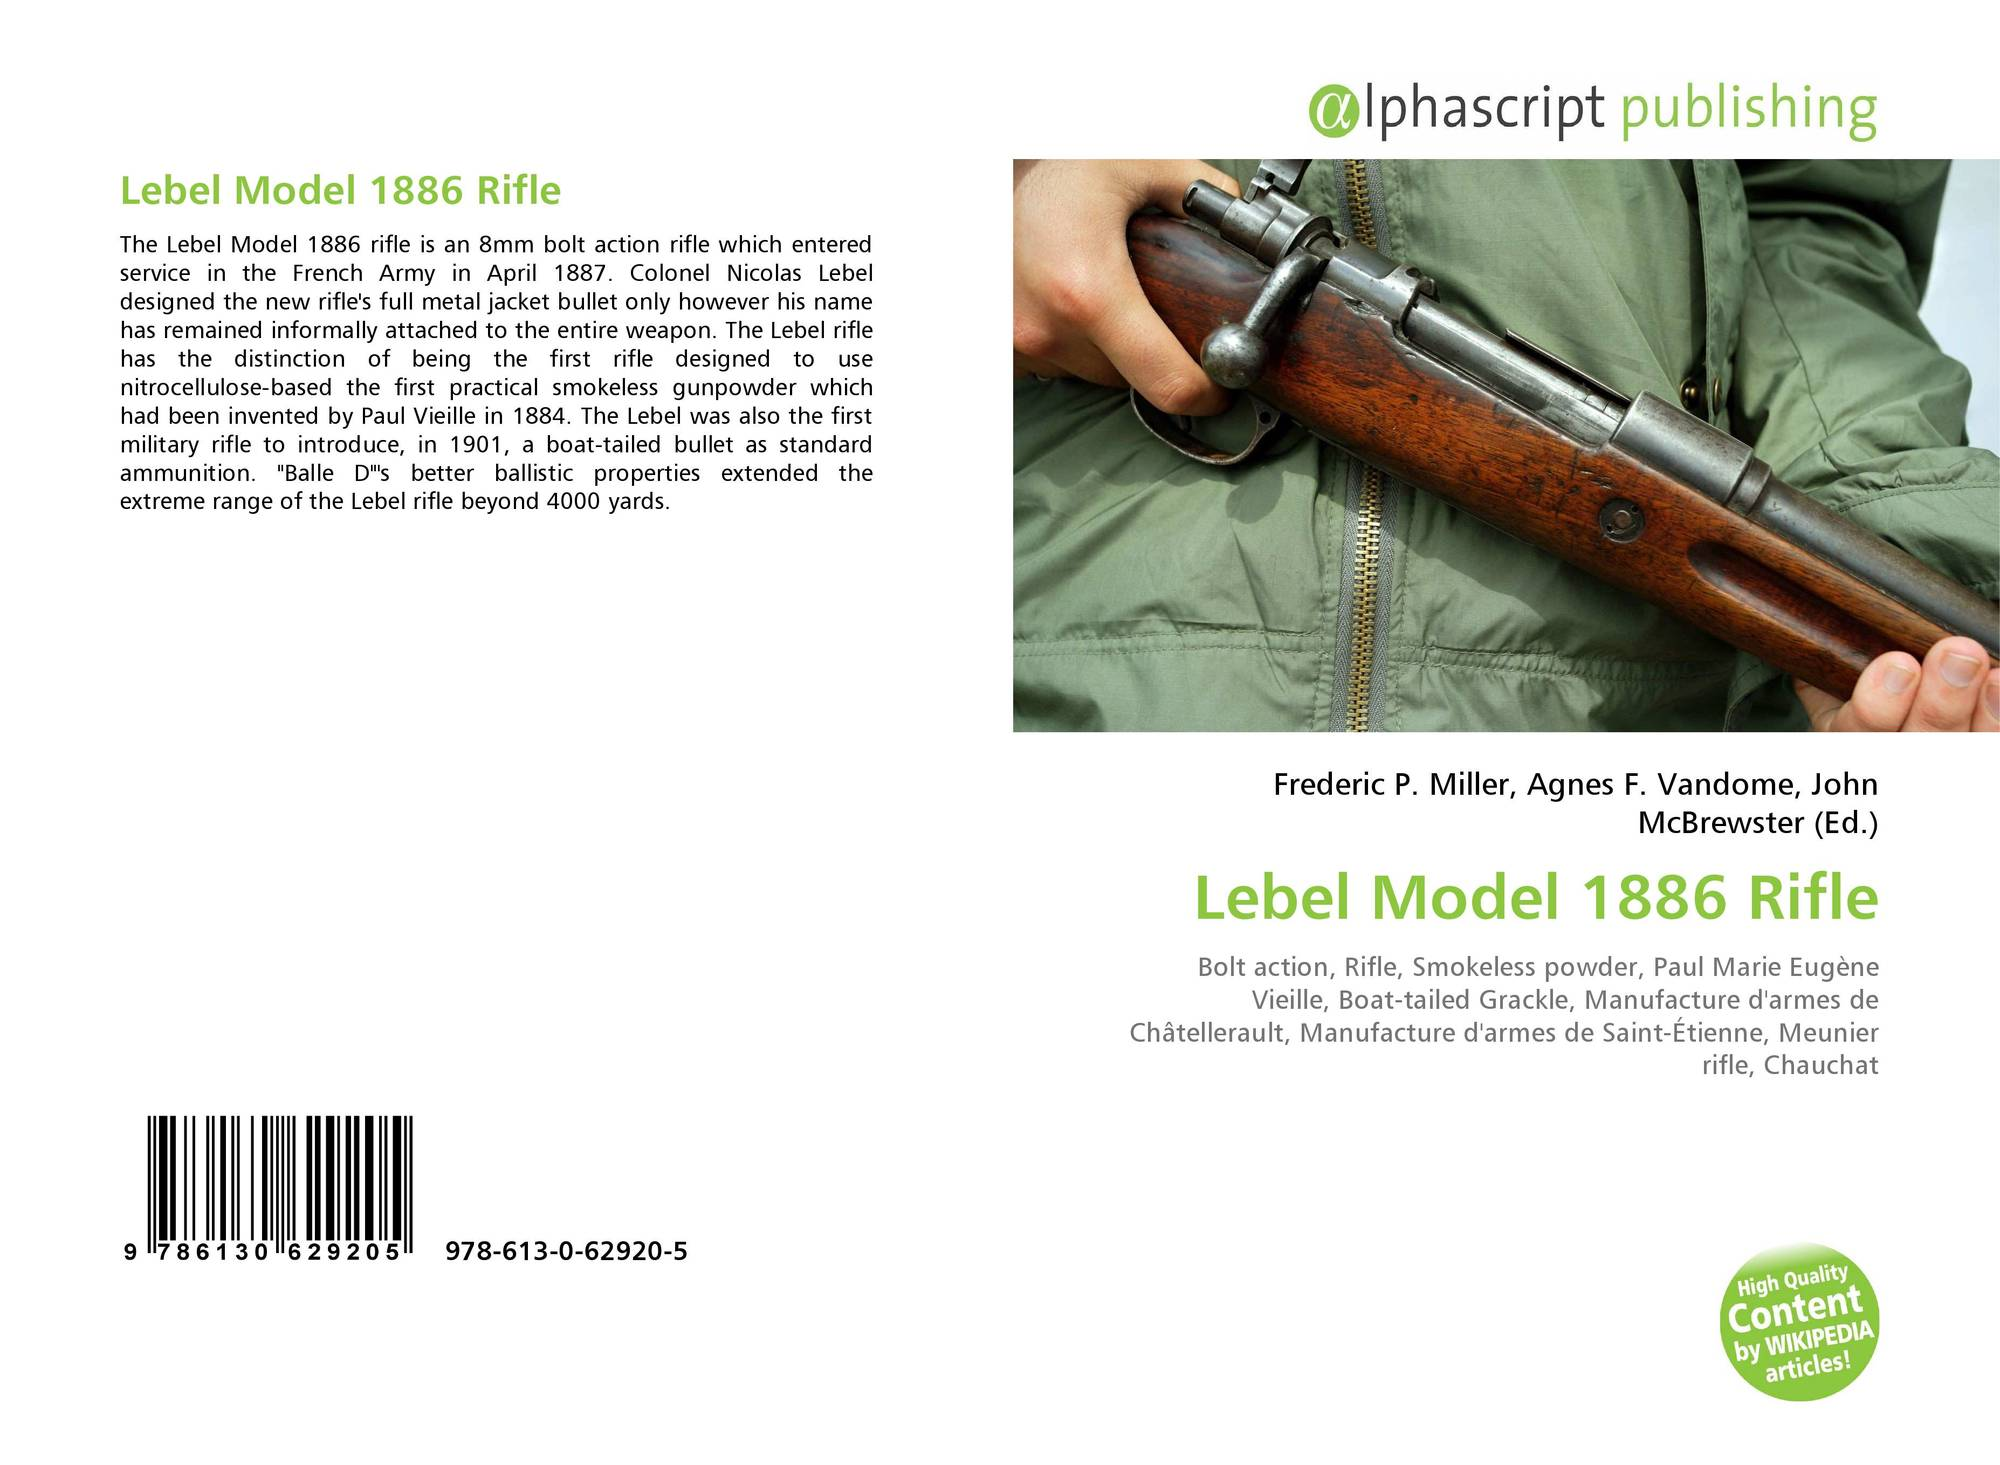 Lebel Model 1886 Rifle, 978-613-0-62920-5, 6130629206